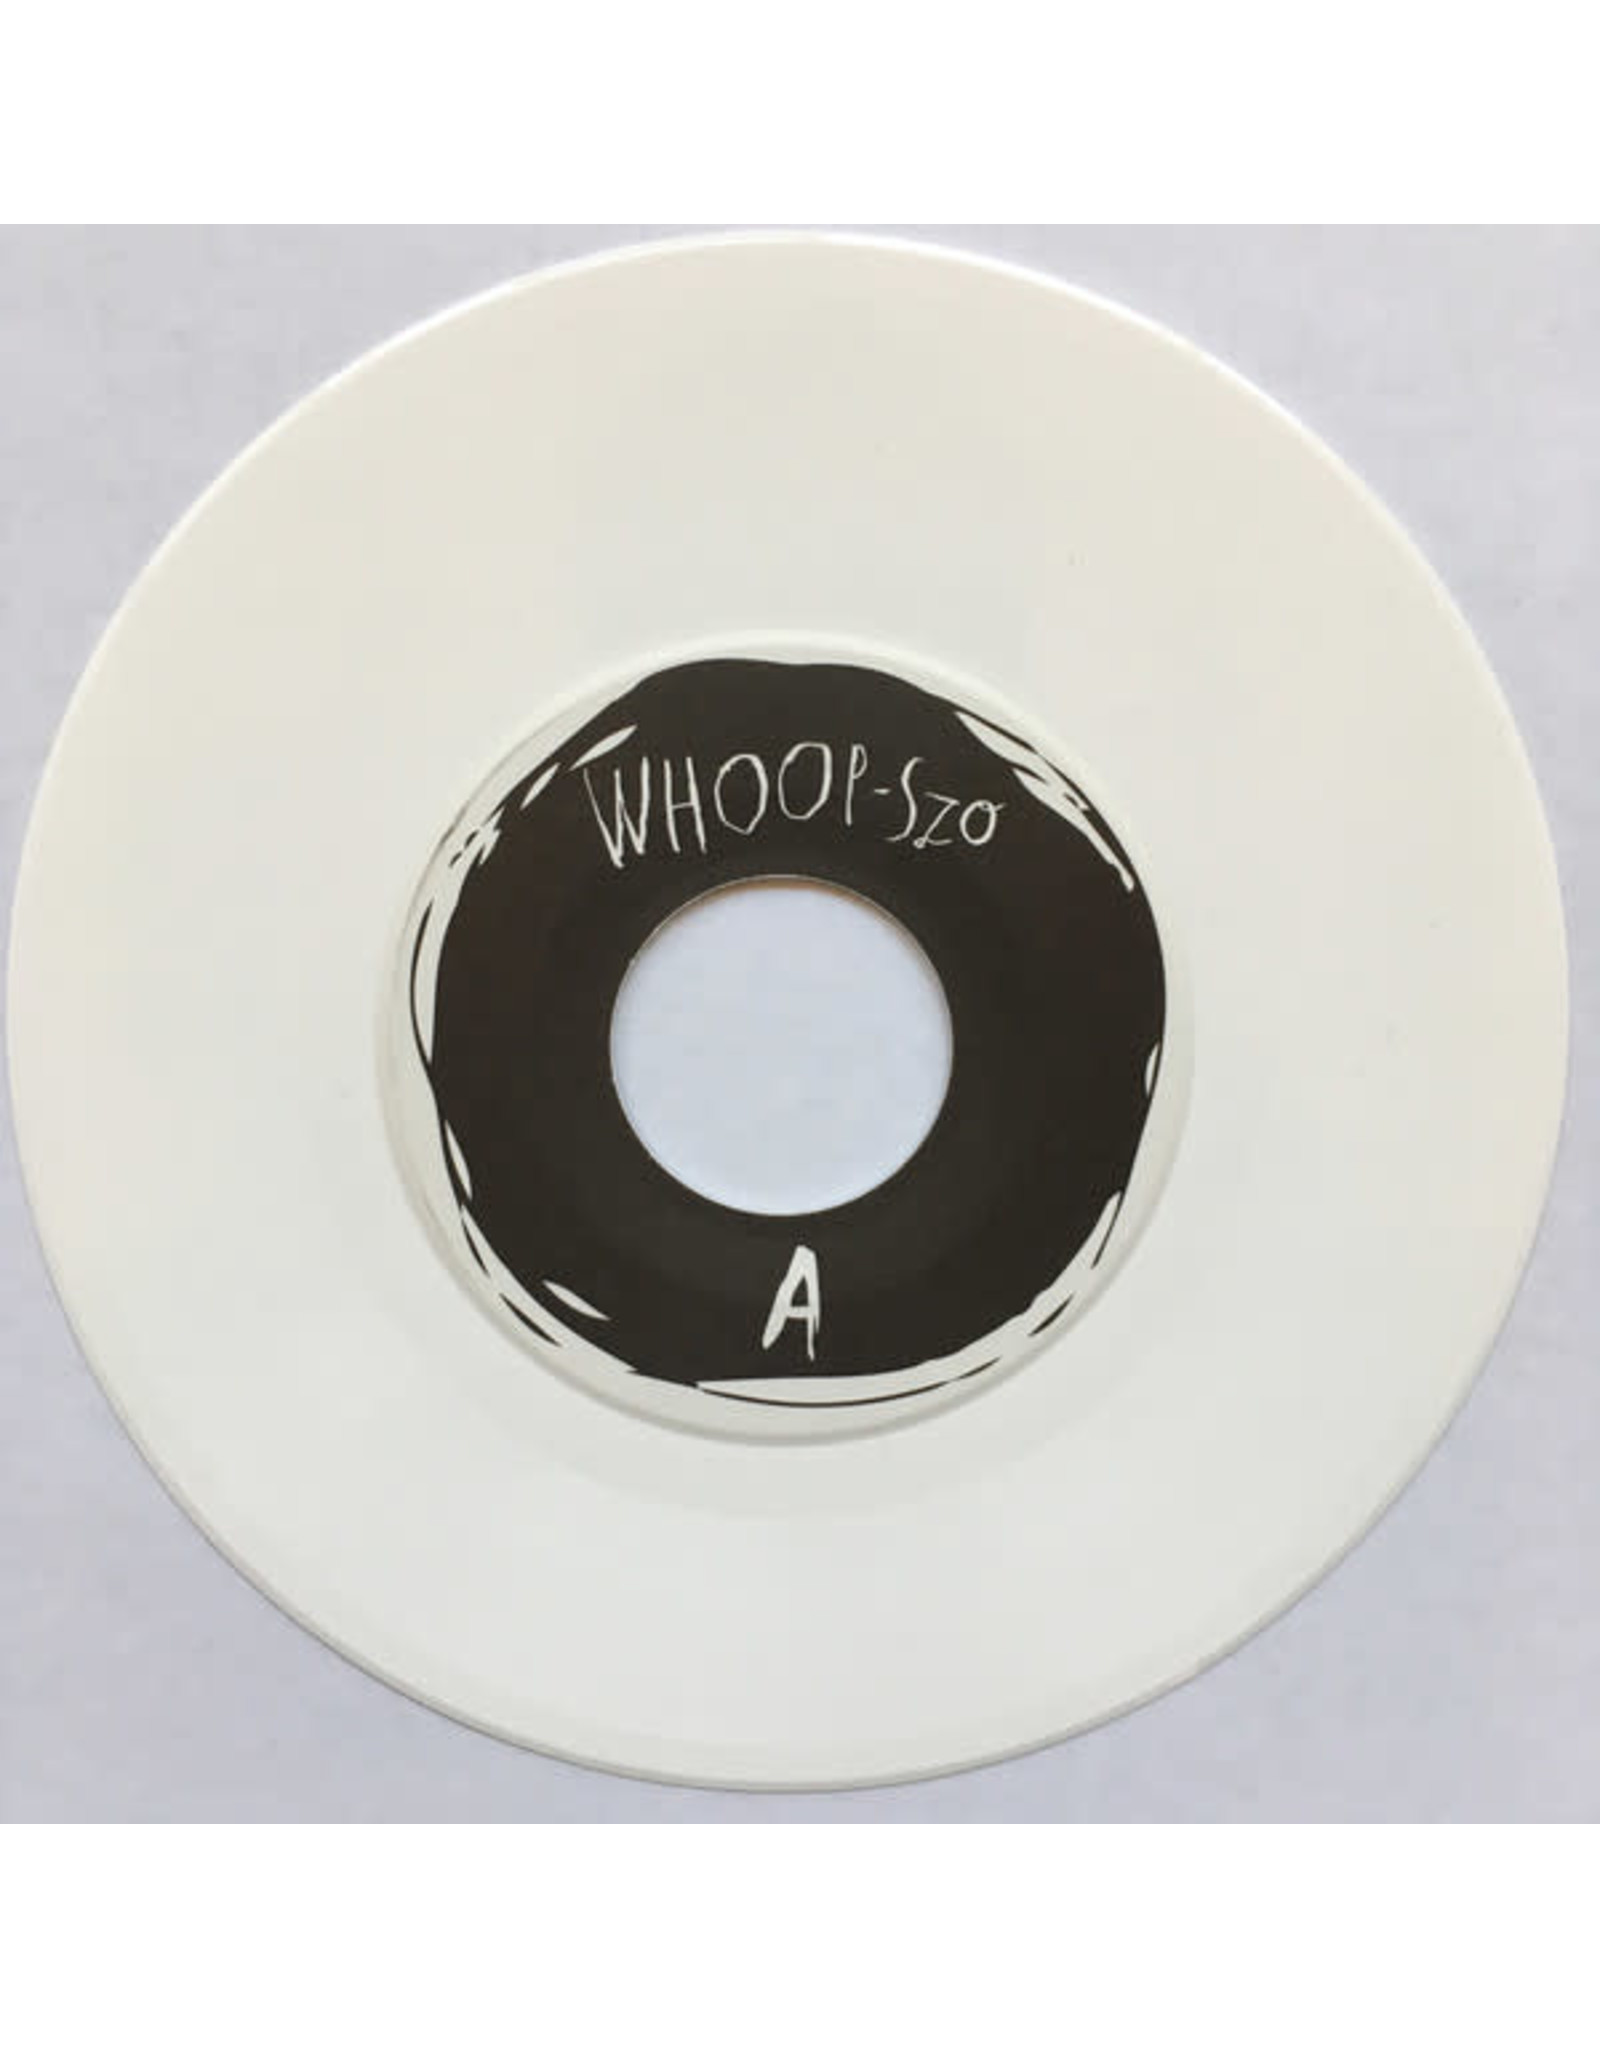 "WHOOP-Szo - The Dive 7"" White"